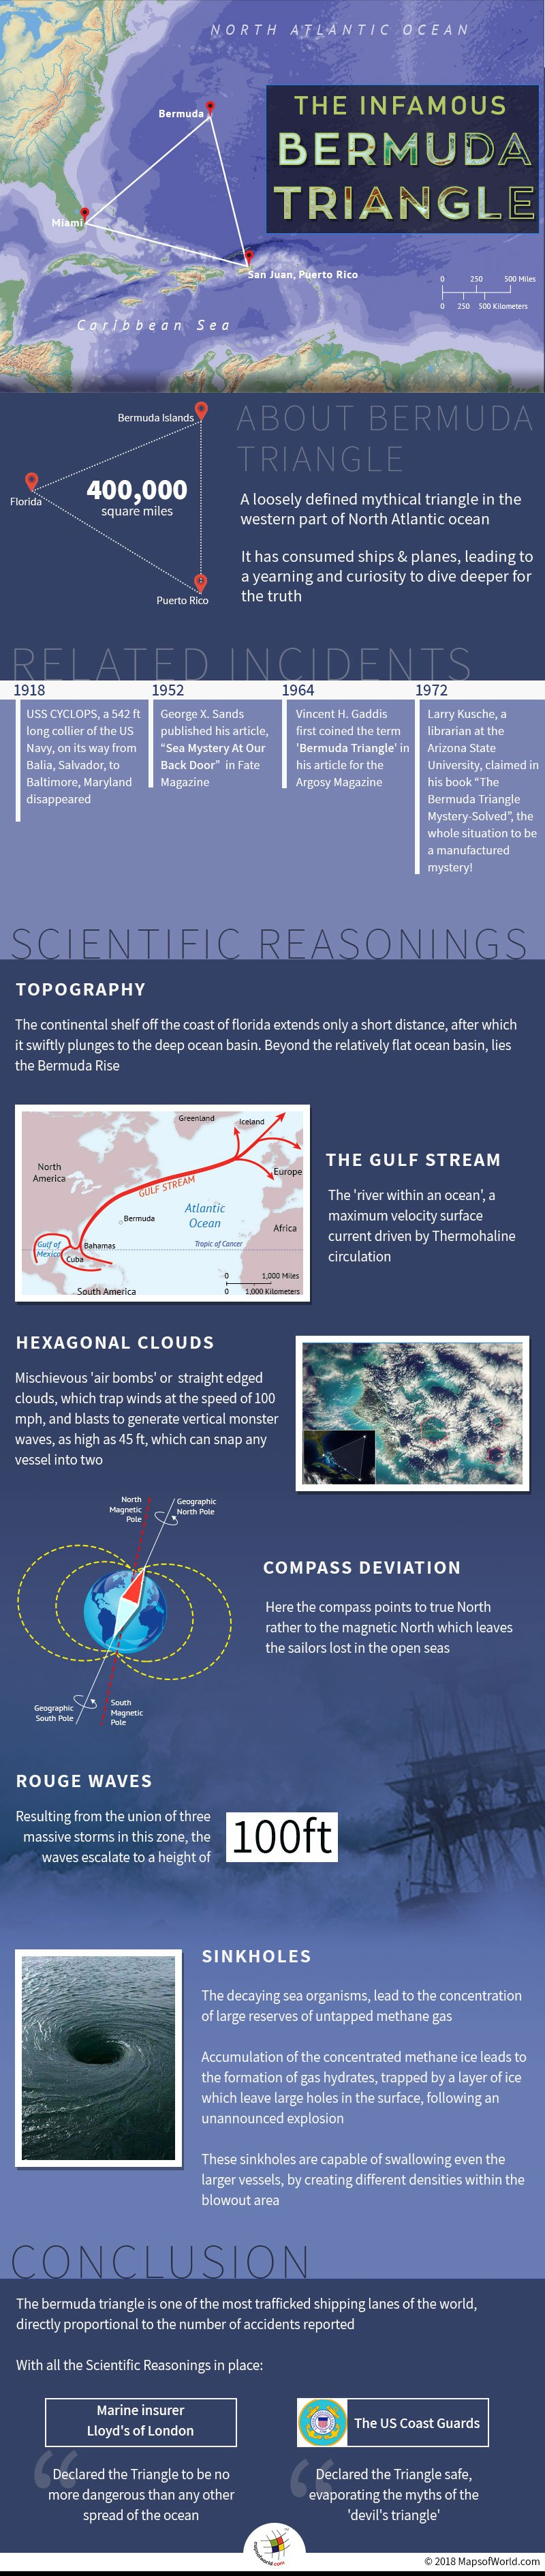 Infographic elaborating Bermuda Triangle